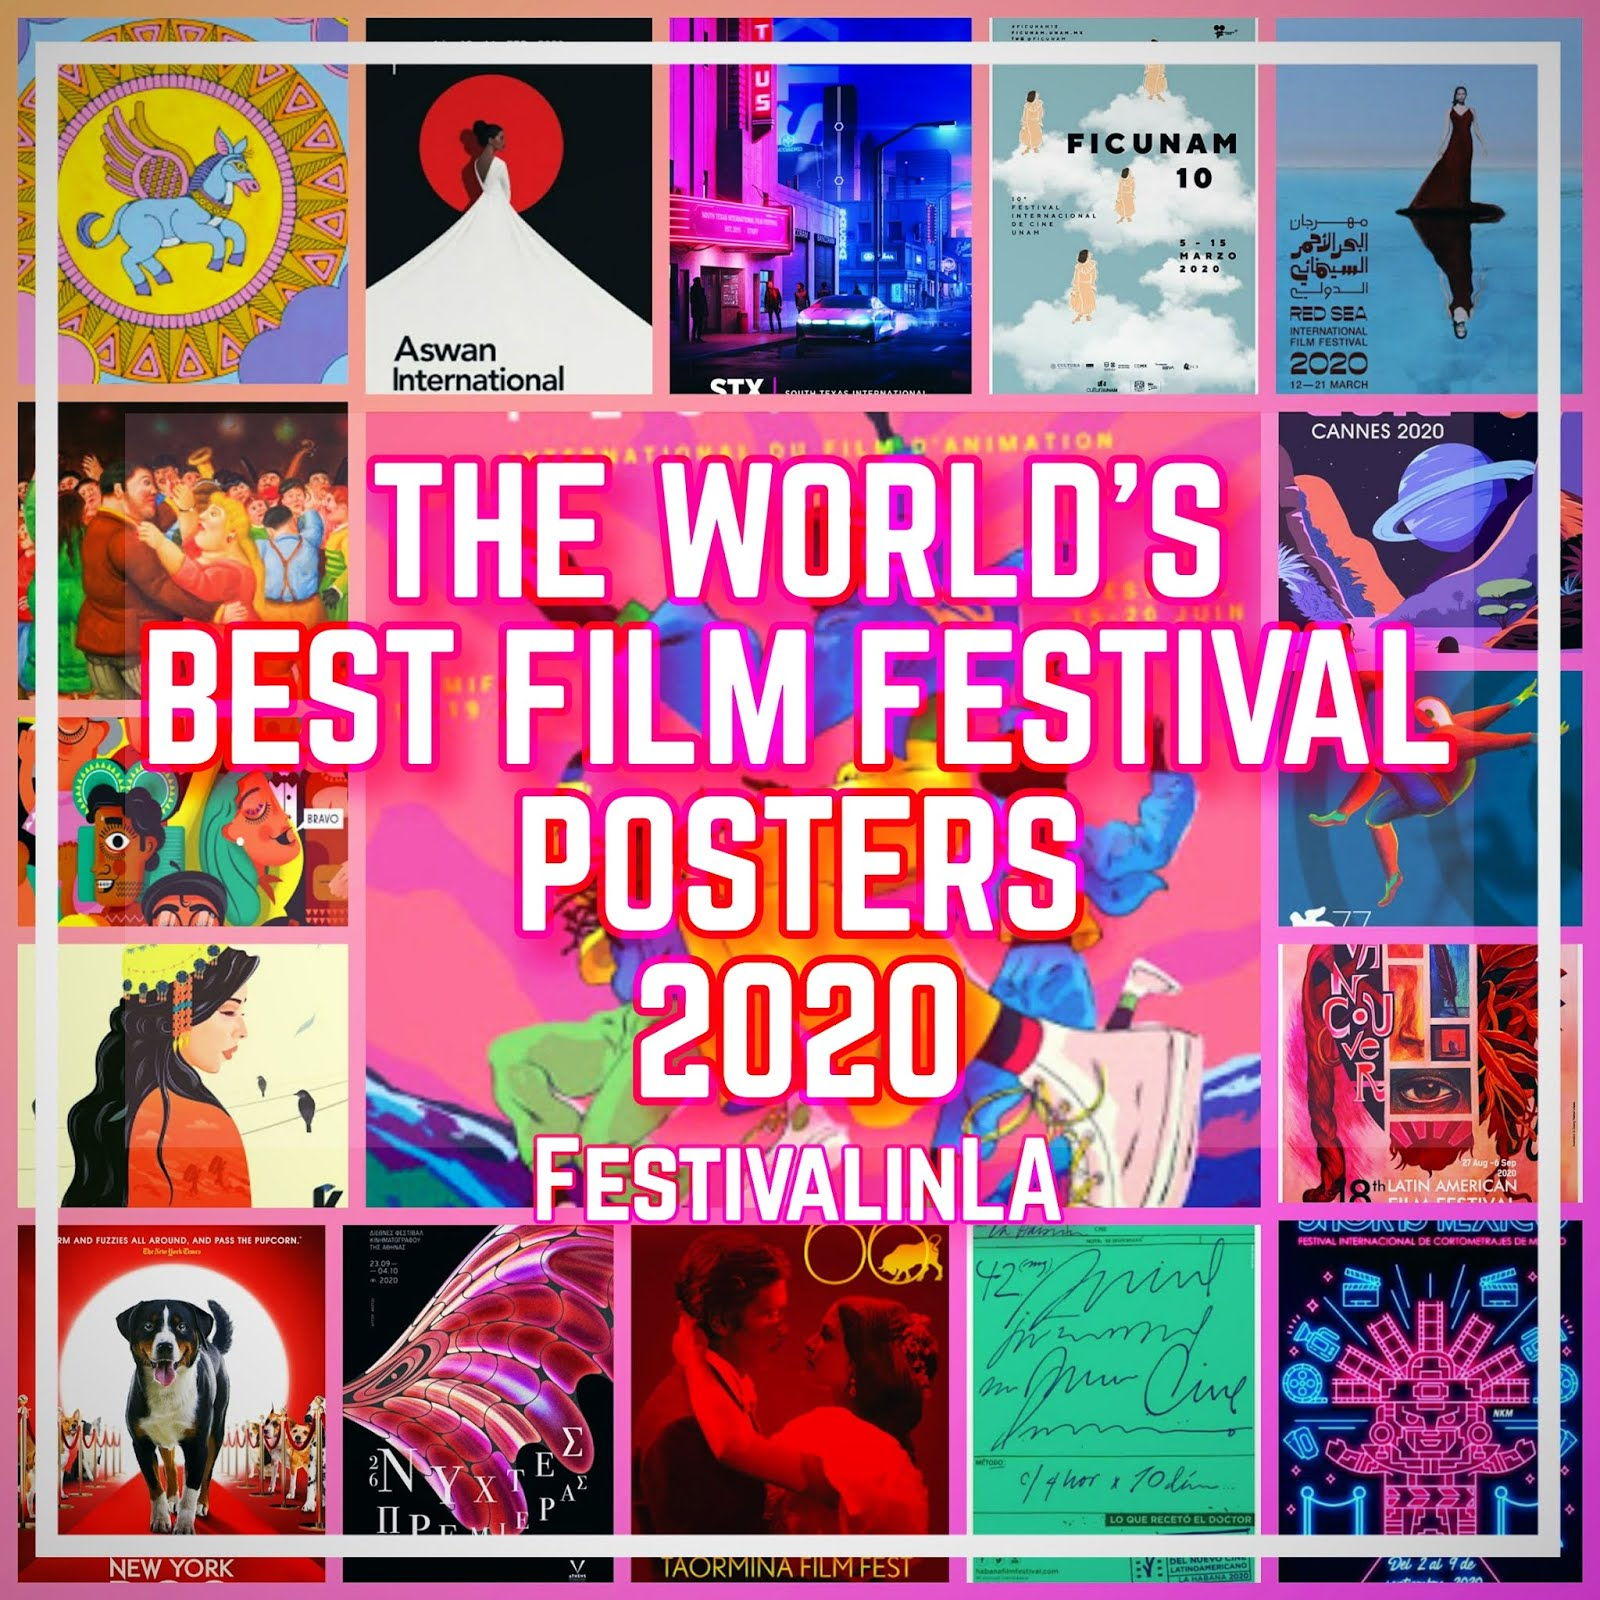 THE WORLD'S BEST FILM FESTIVAL POSTERS 2020